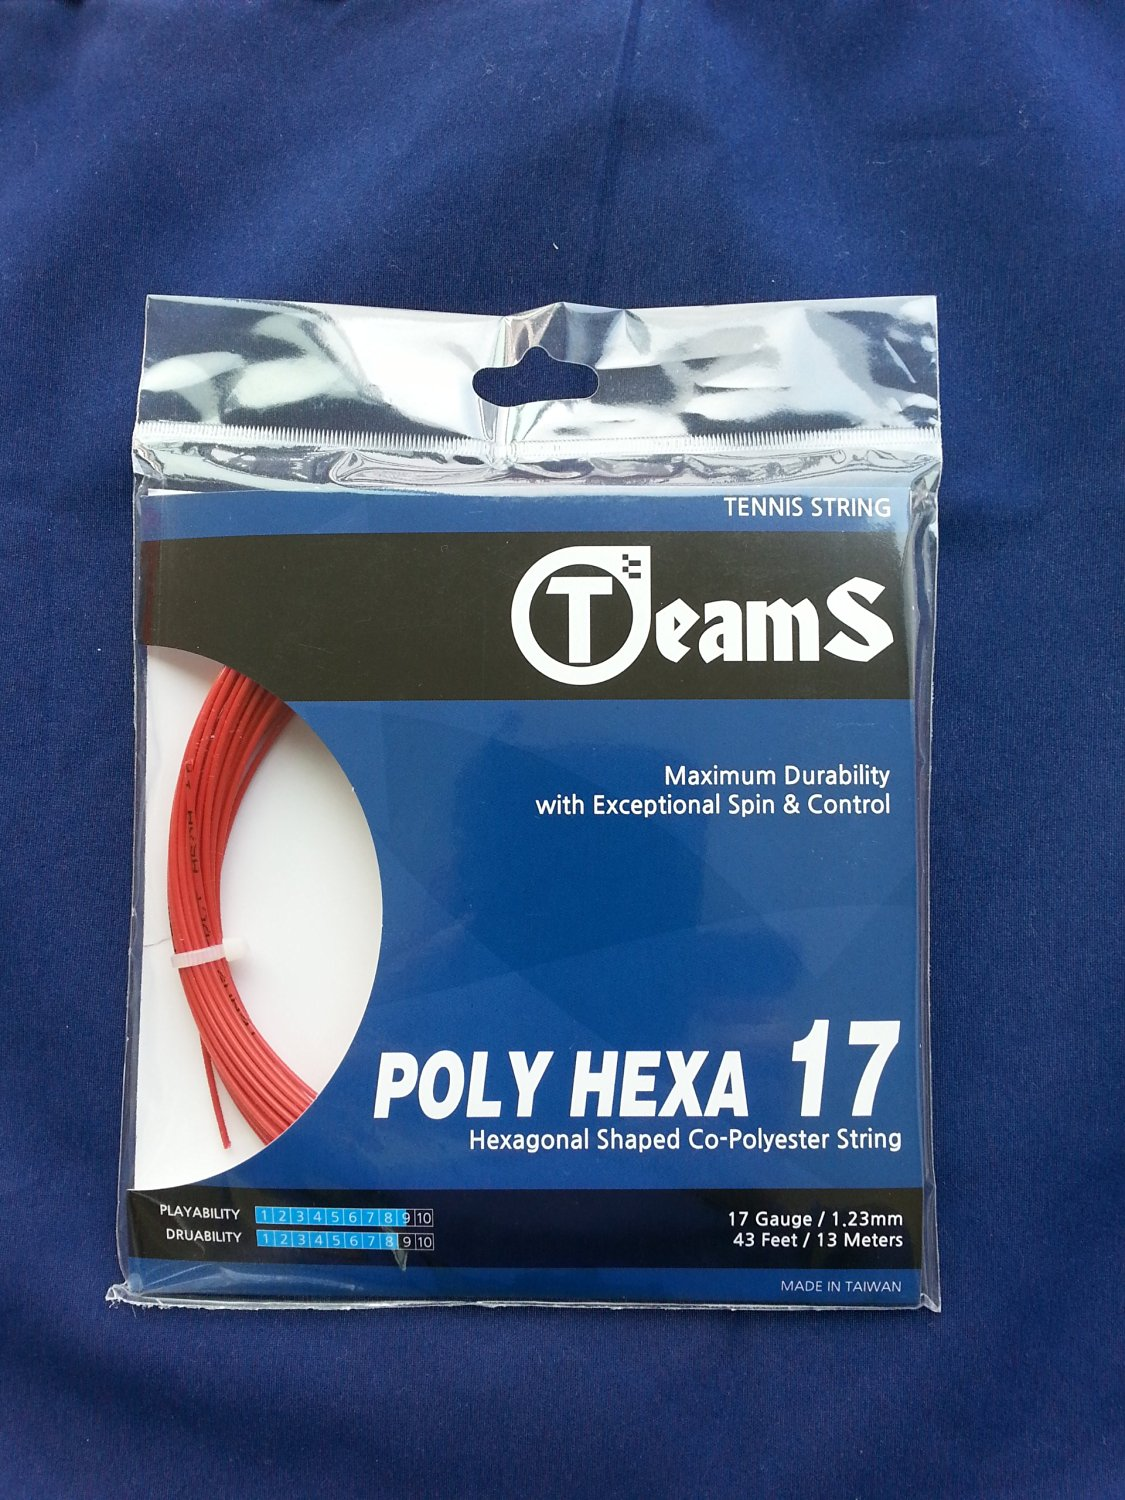 Tennis String Poly Hexa 17 . Power, Spin, Control, Gut, Strings,guts, Polyester